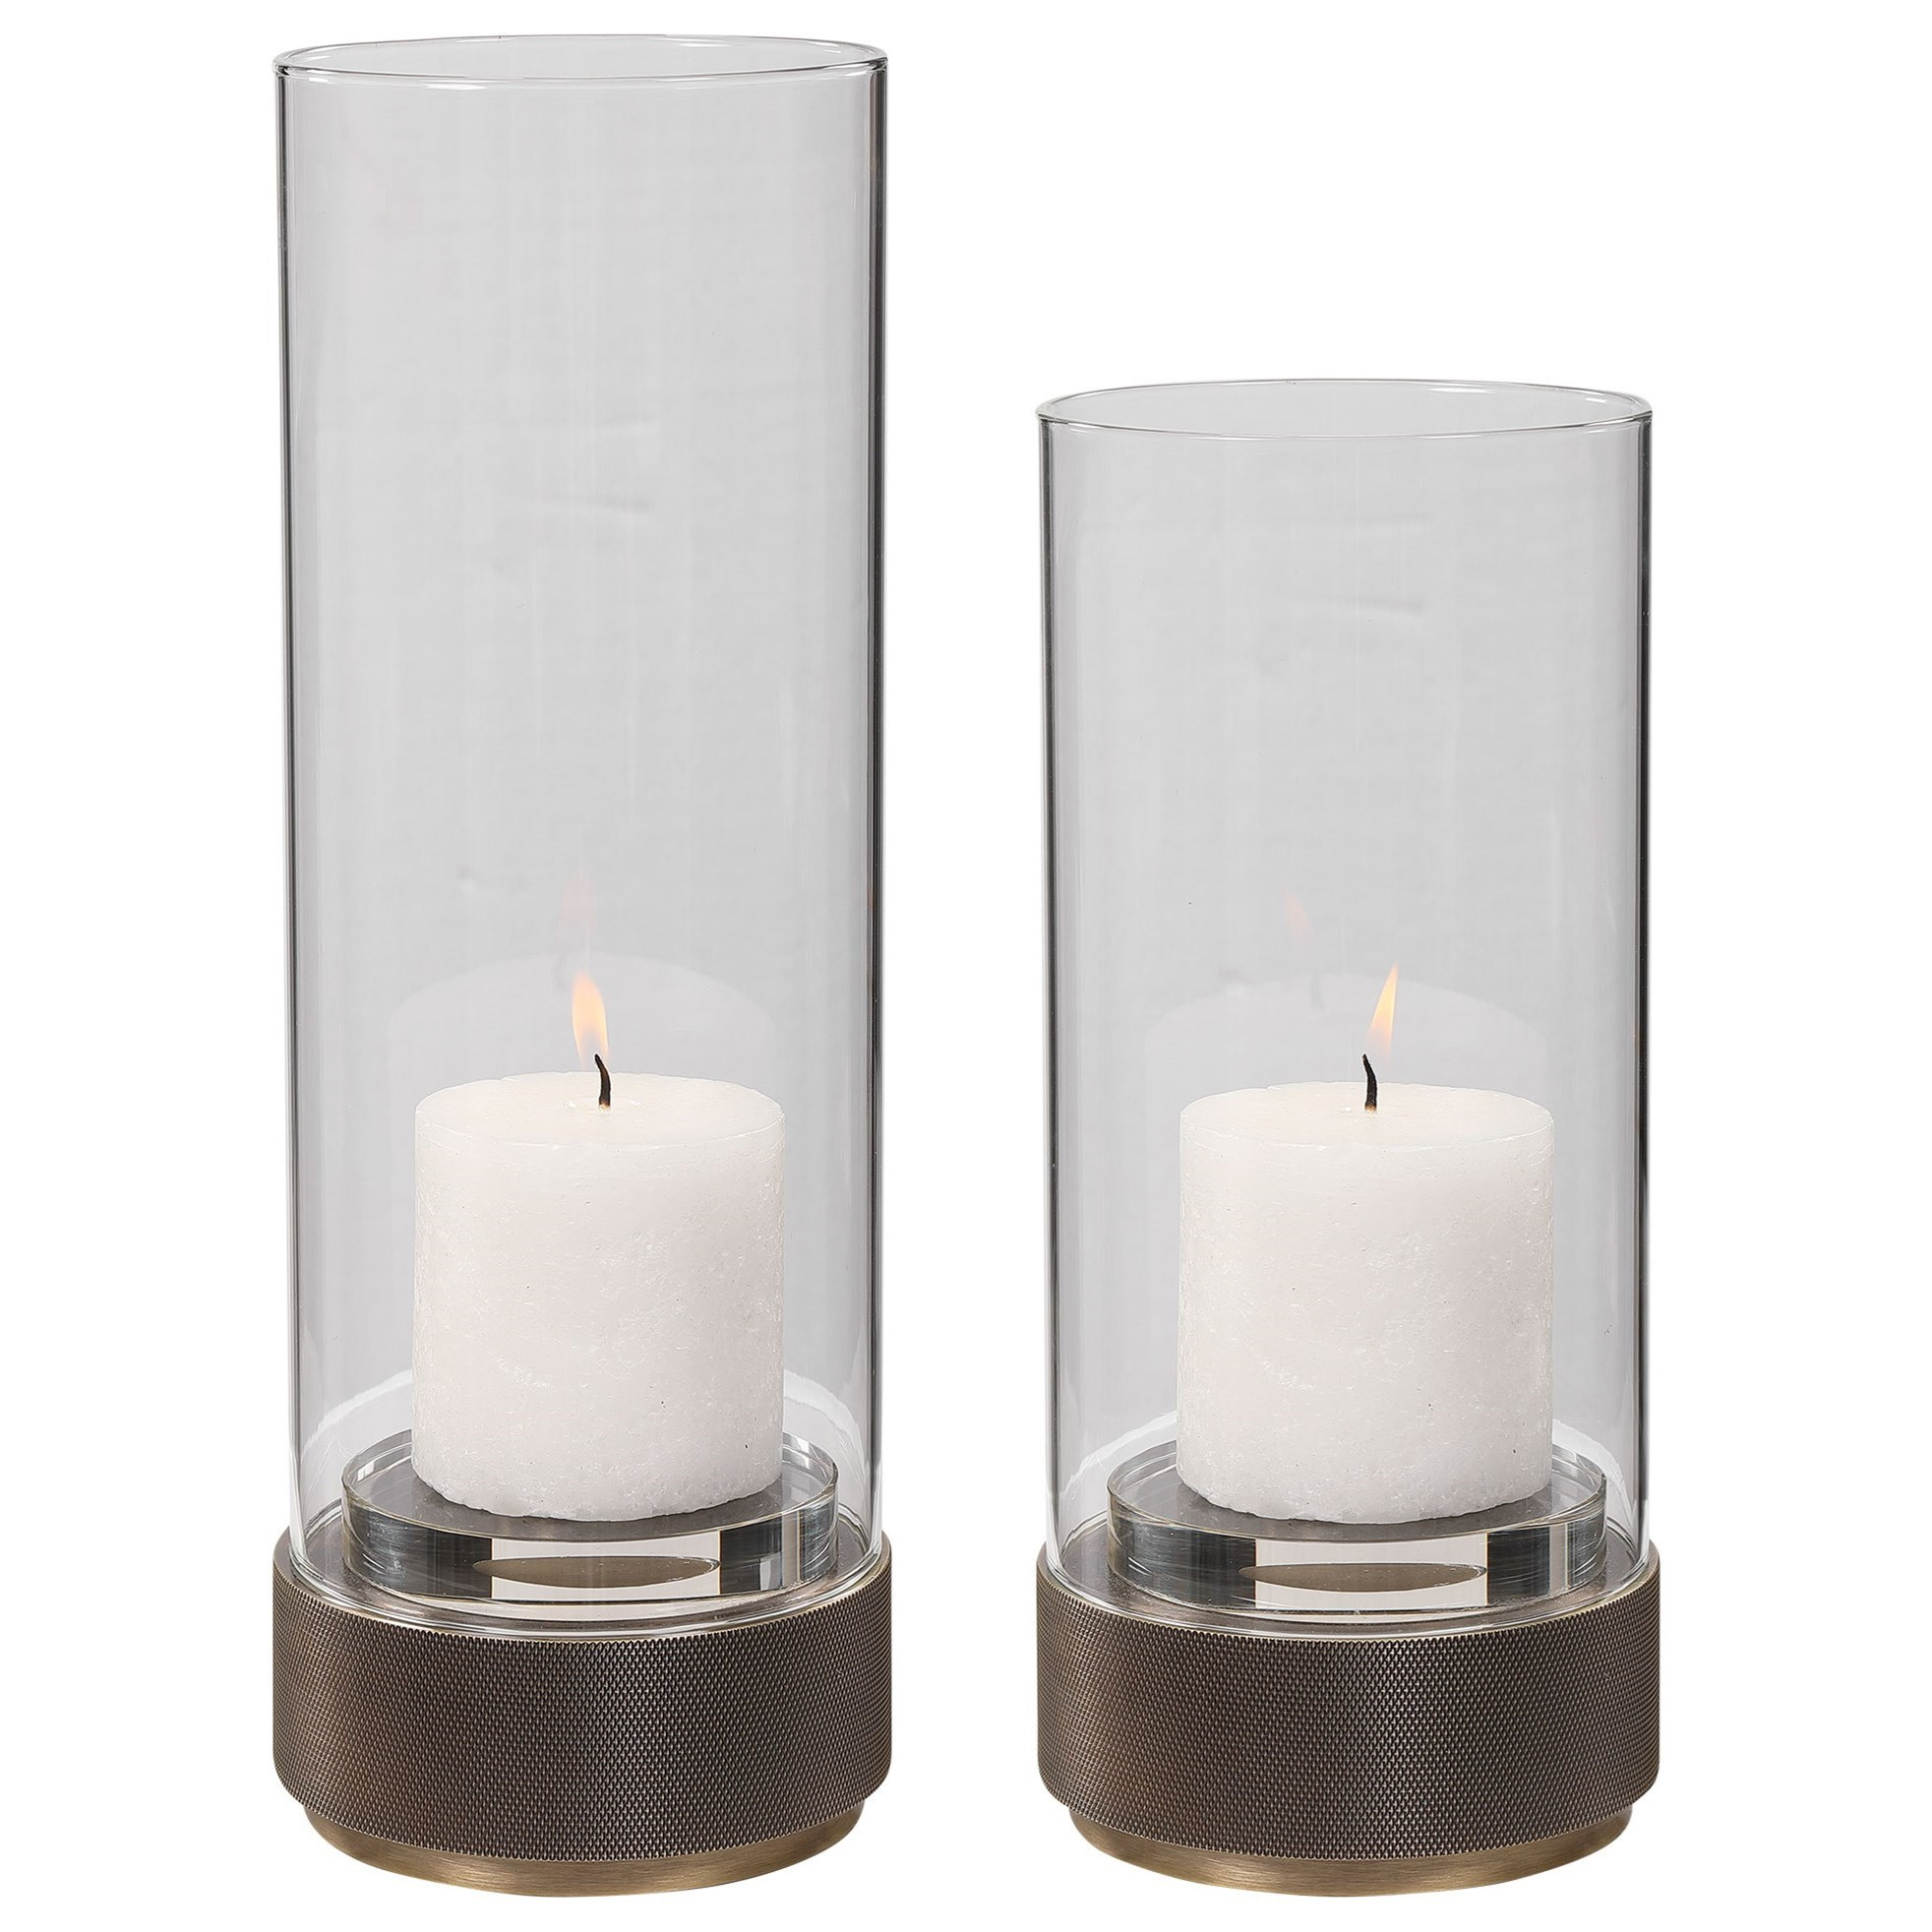 Accessories - Candle Holders Sandringham Brushed Brass Candleholders, S/2 by Uttermost at Suburban Furniture